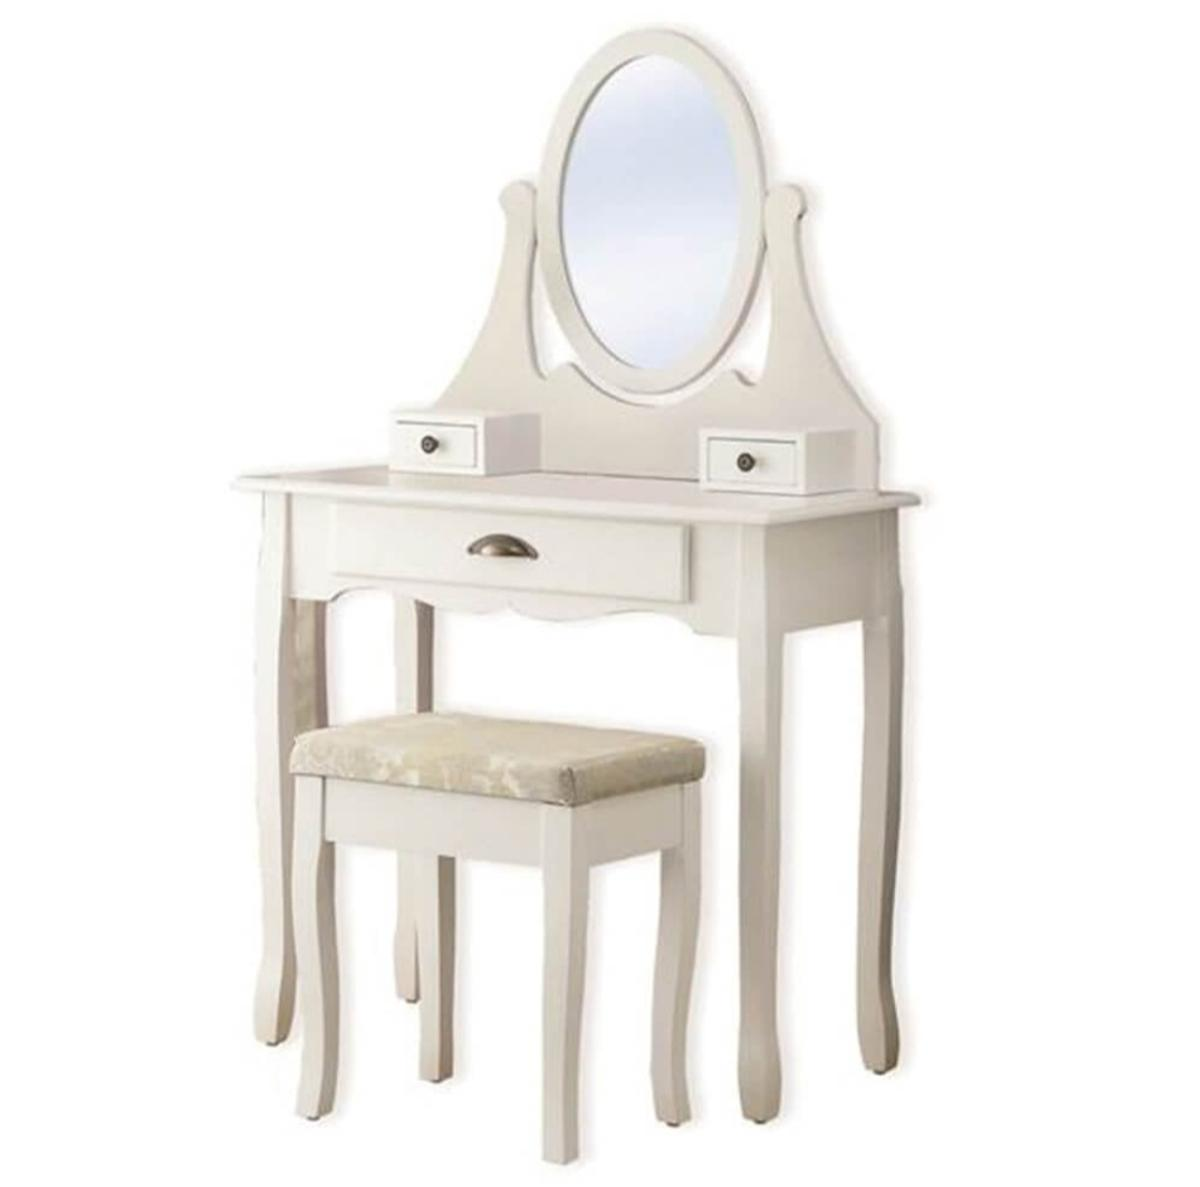 Enjoyable White Dressing Table Stool Rrp 150 Squirreltailoven Fun Painted Chair Ideas Images Squirreltailovenorg